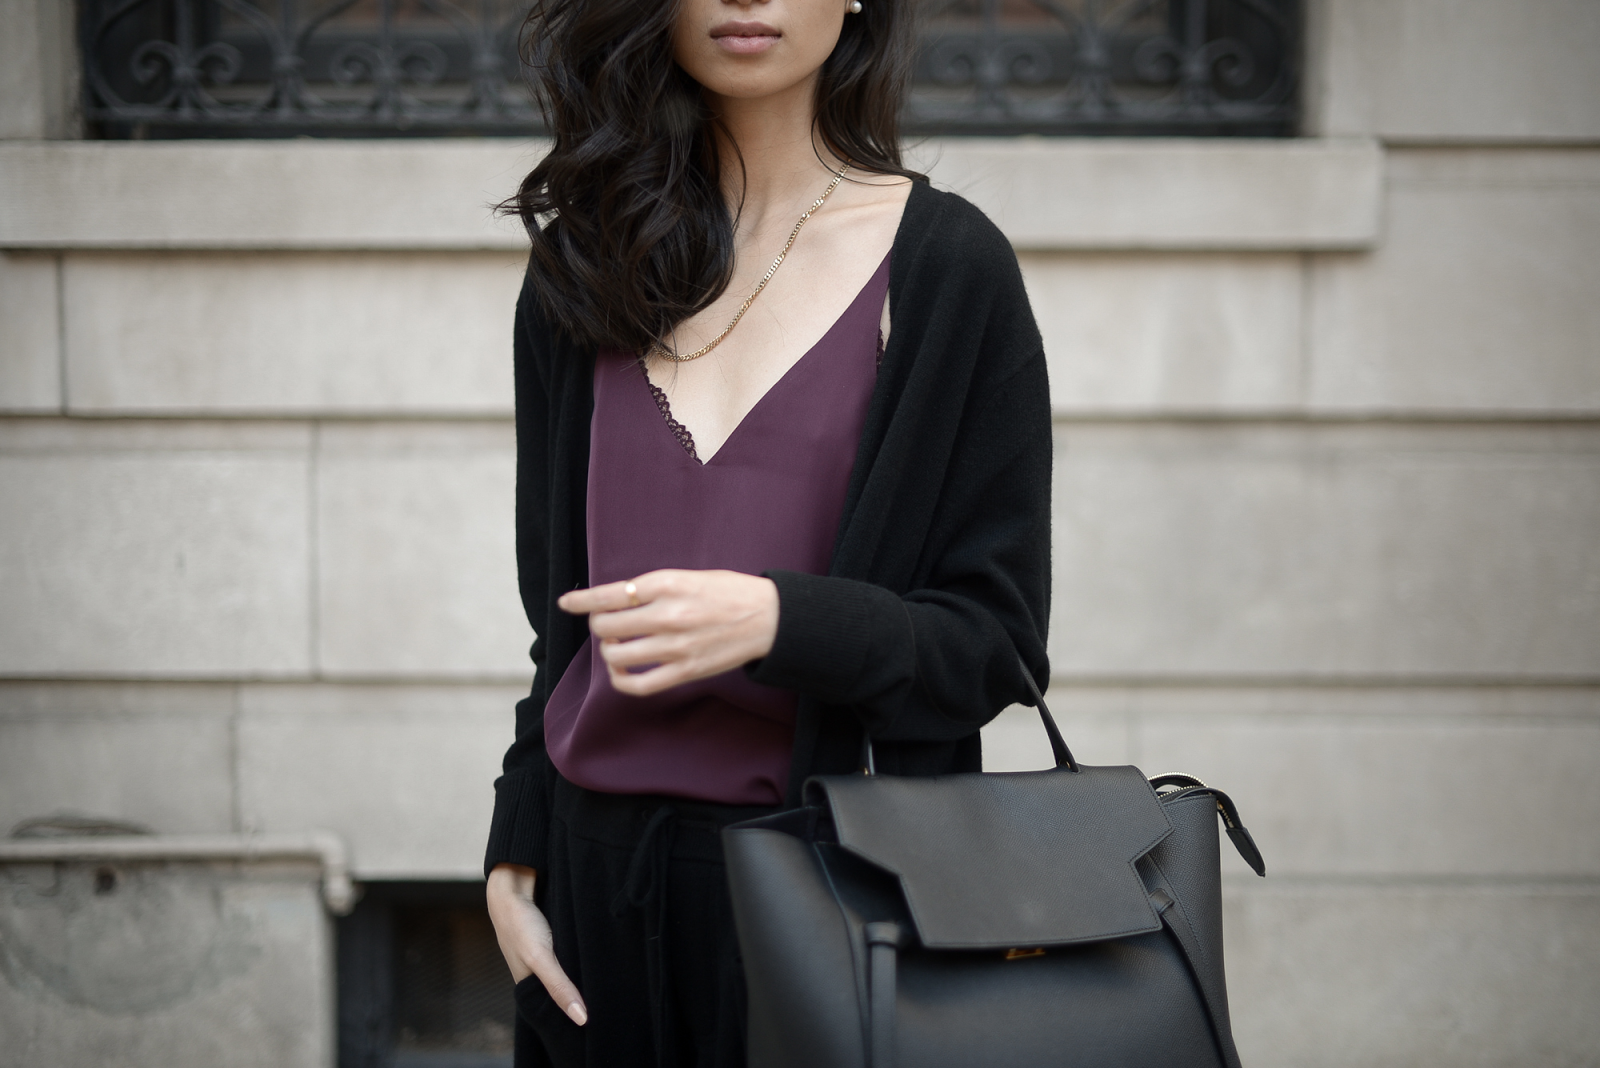 GRANA Silk Slip Dress and Cashmere Cardigan, Celine Belt Bag and Tibi Slides, Ways to Style Slip Dress for Fall / GRANA - Cozy Cashmere / FOREVERVANNY